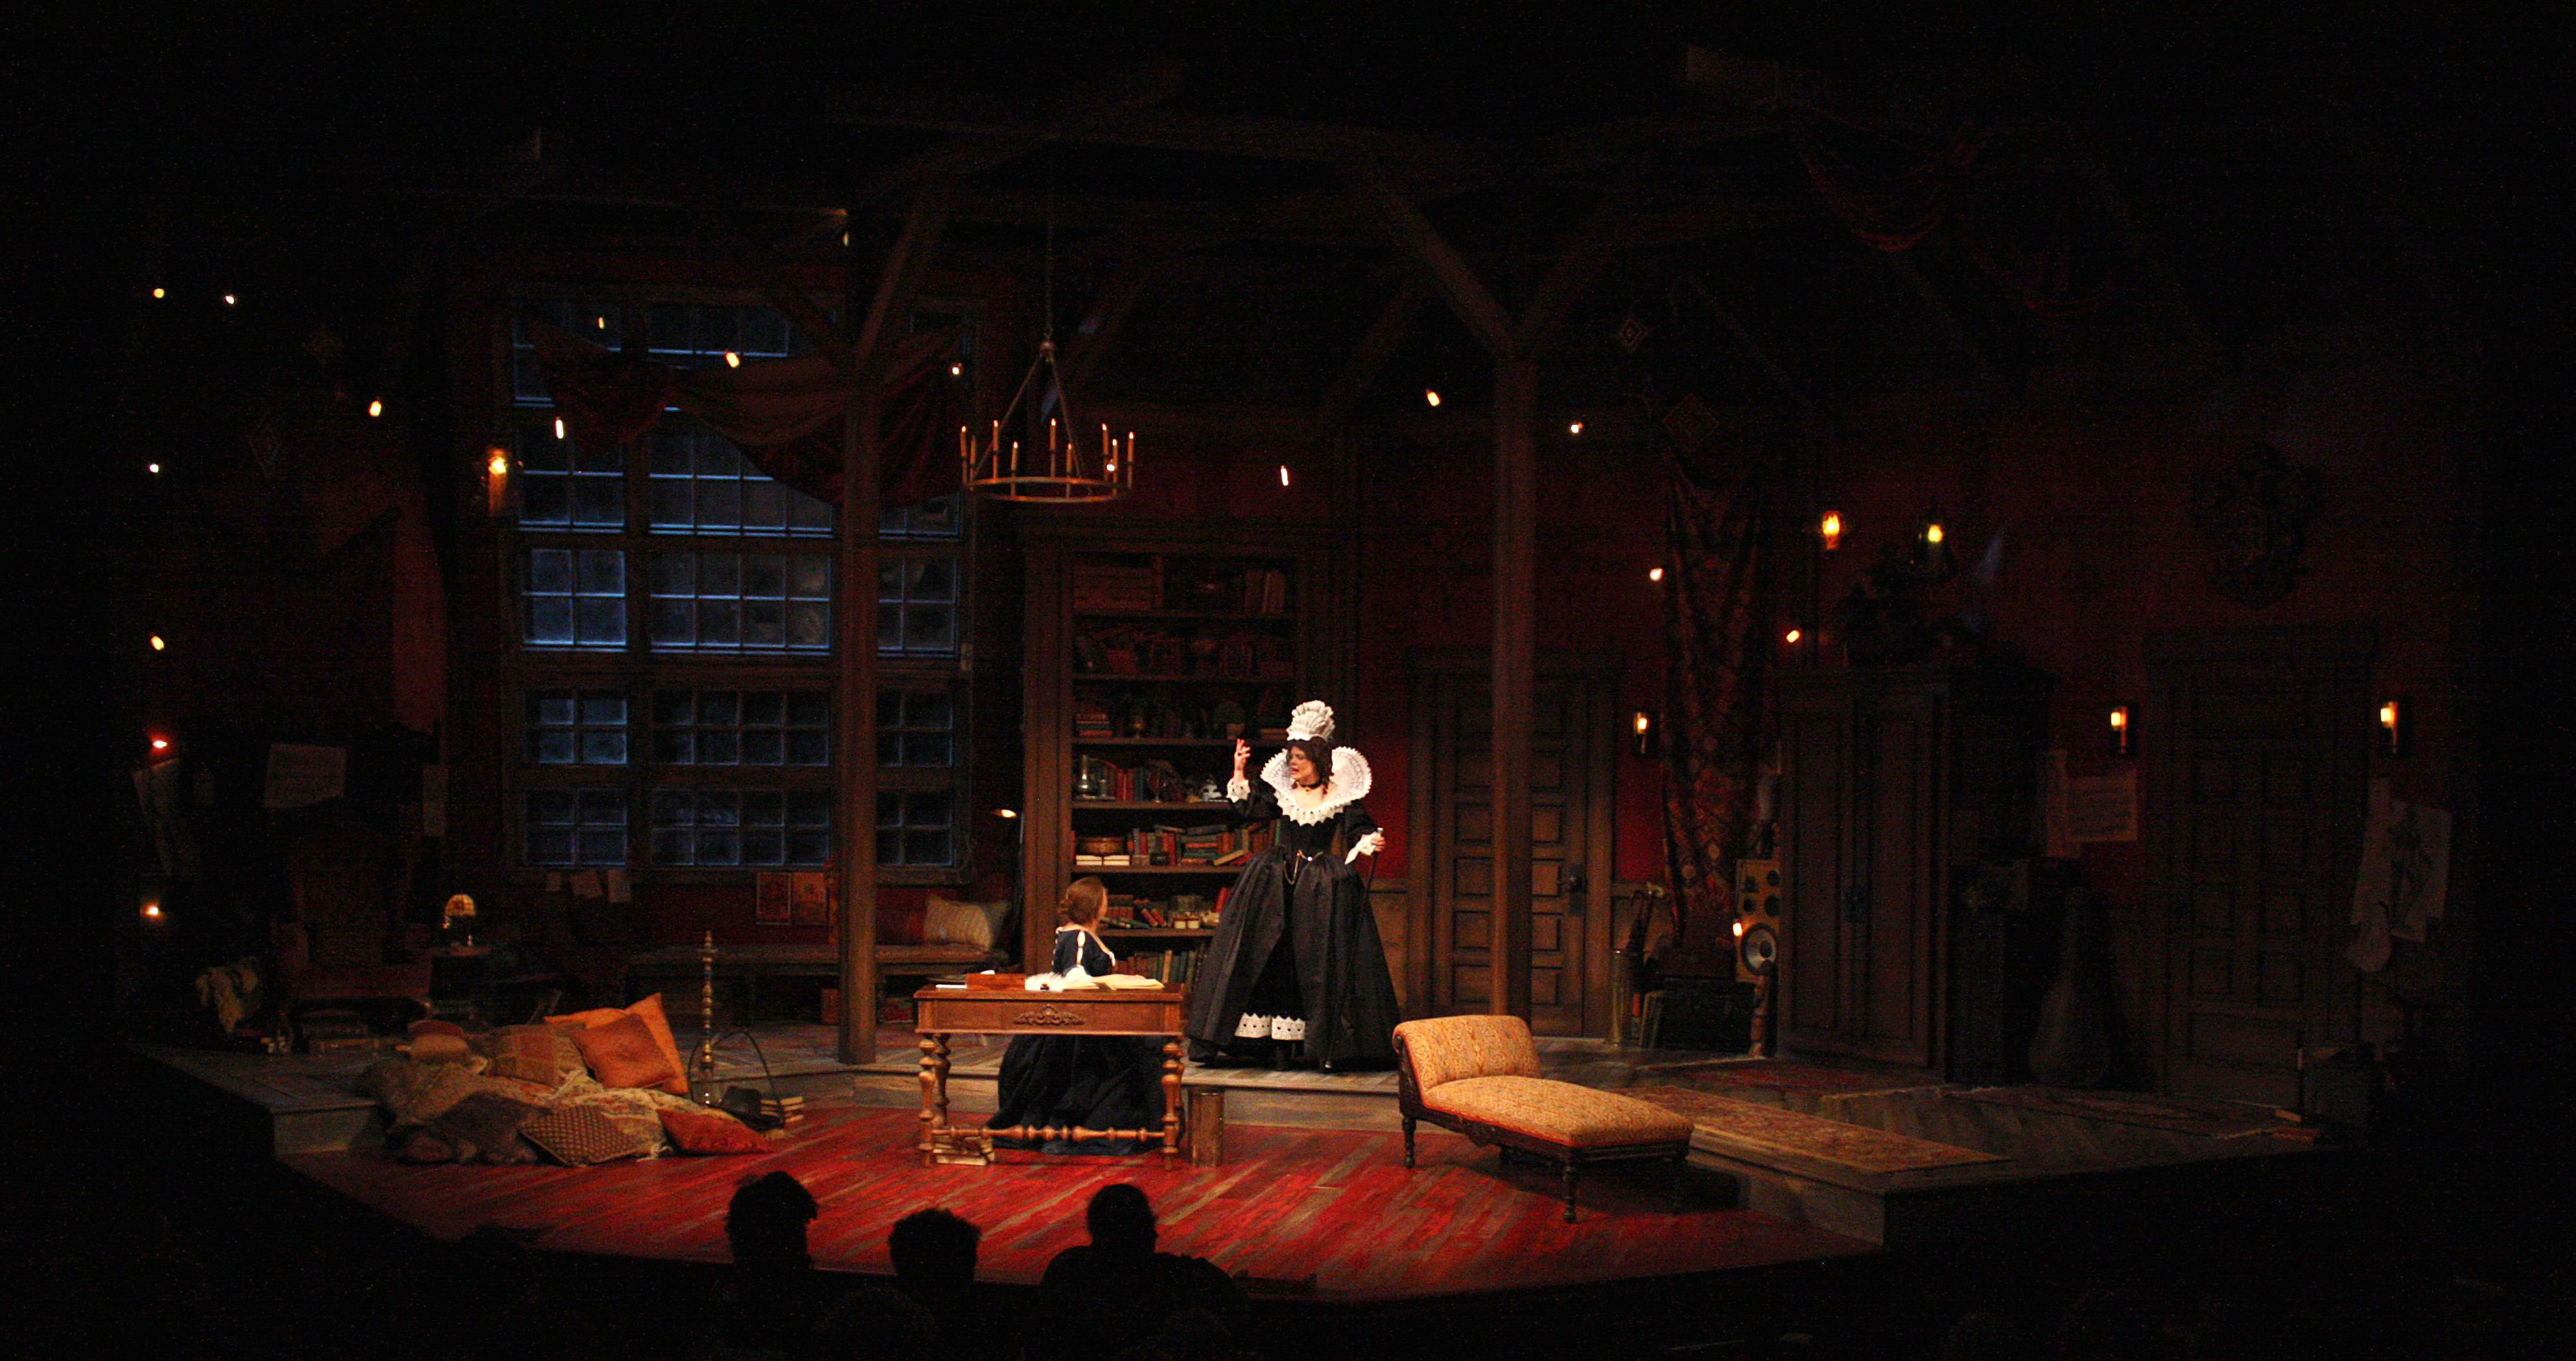 Or by Liz Duffy Adams Round House Theatre Scenic Design